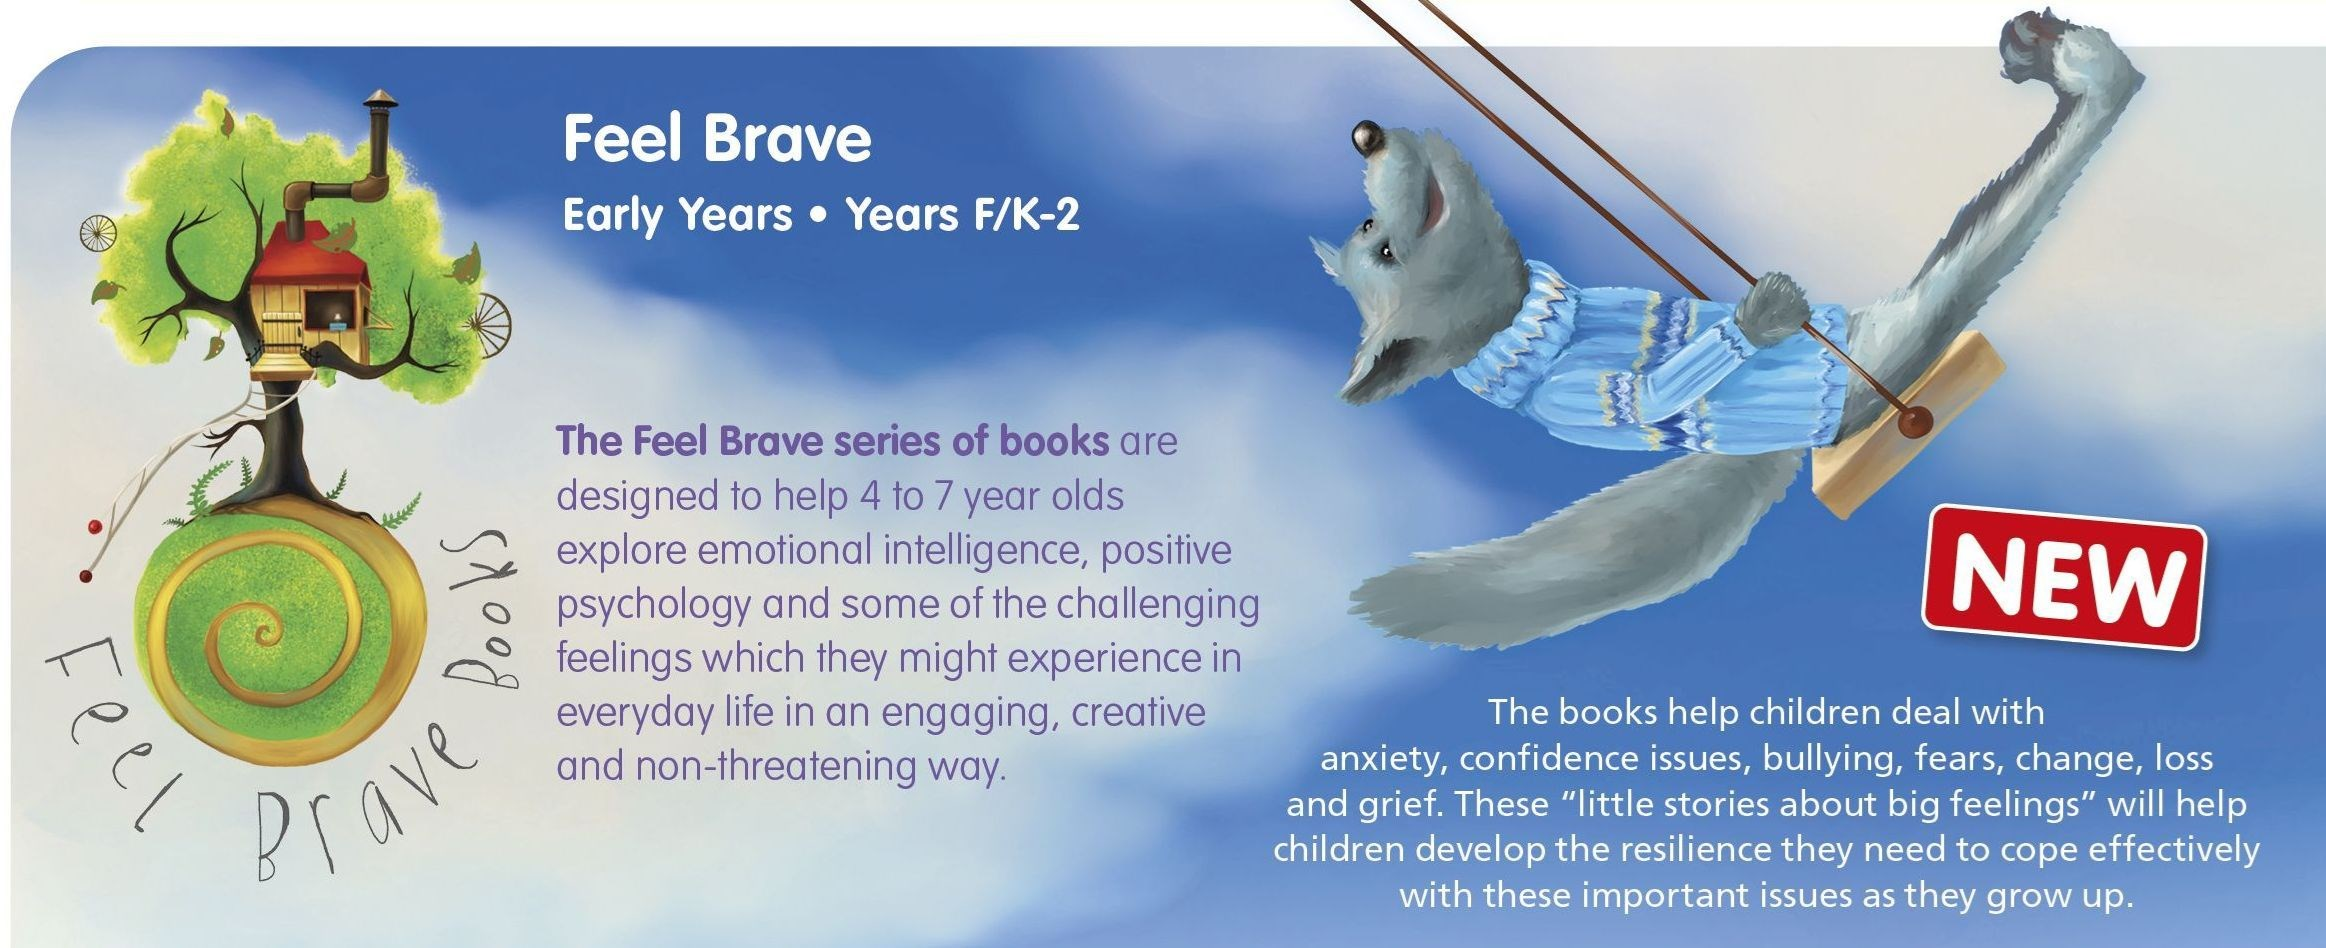 FEELBRAVEHEADER1 Lioncrest Education - Zoom sessions with FEEL BRAVE Author and creator, Avril McDonald